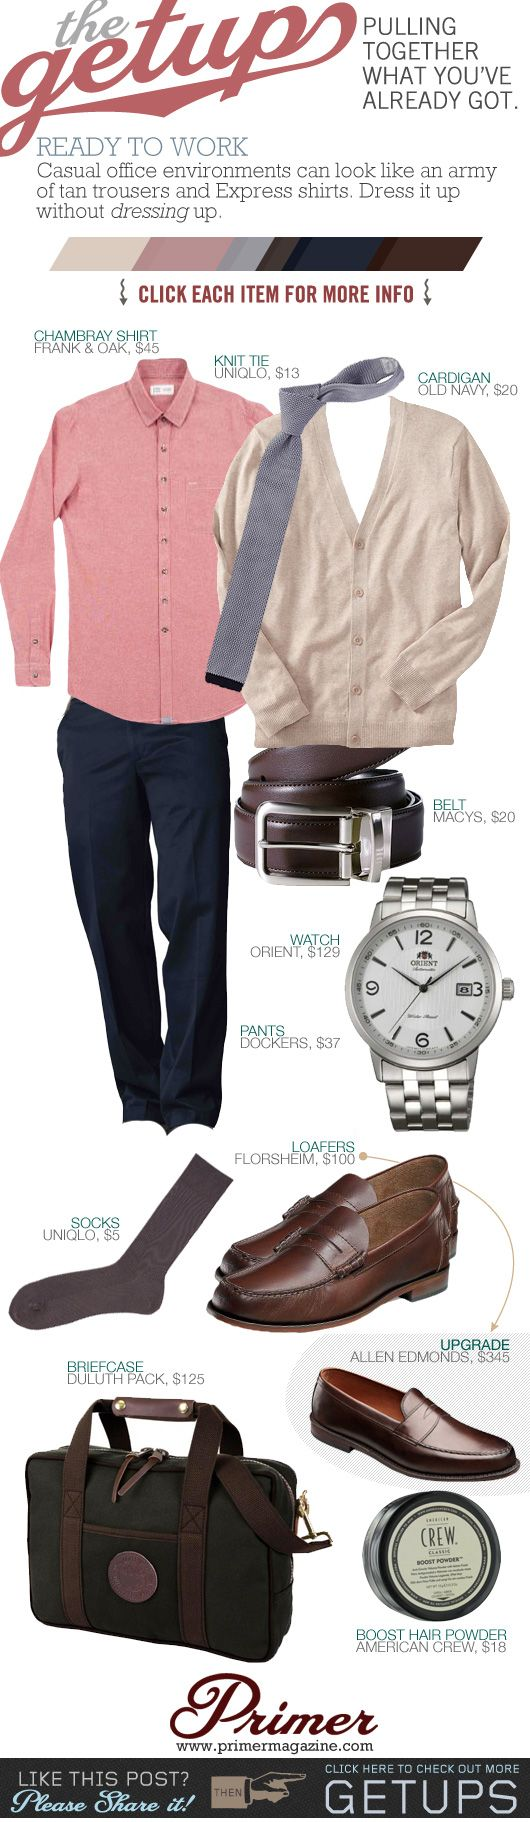 The Getup: Ready to Work - PrimerCasual office environments can look like an army of tan trousers and Express shirts. Dress it up without dressing up.